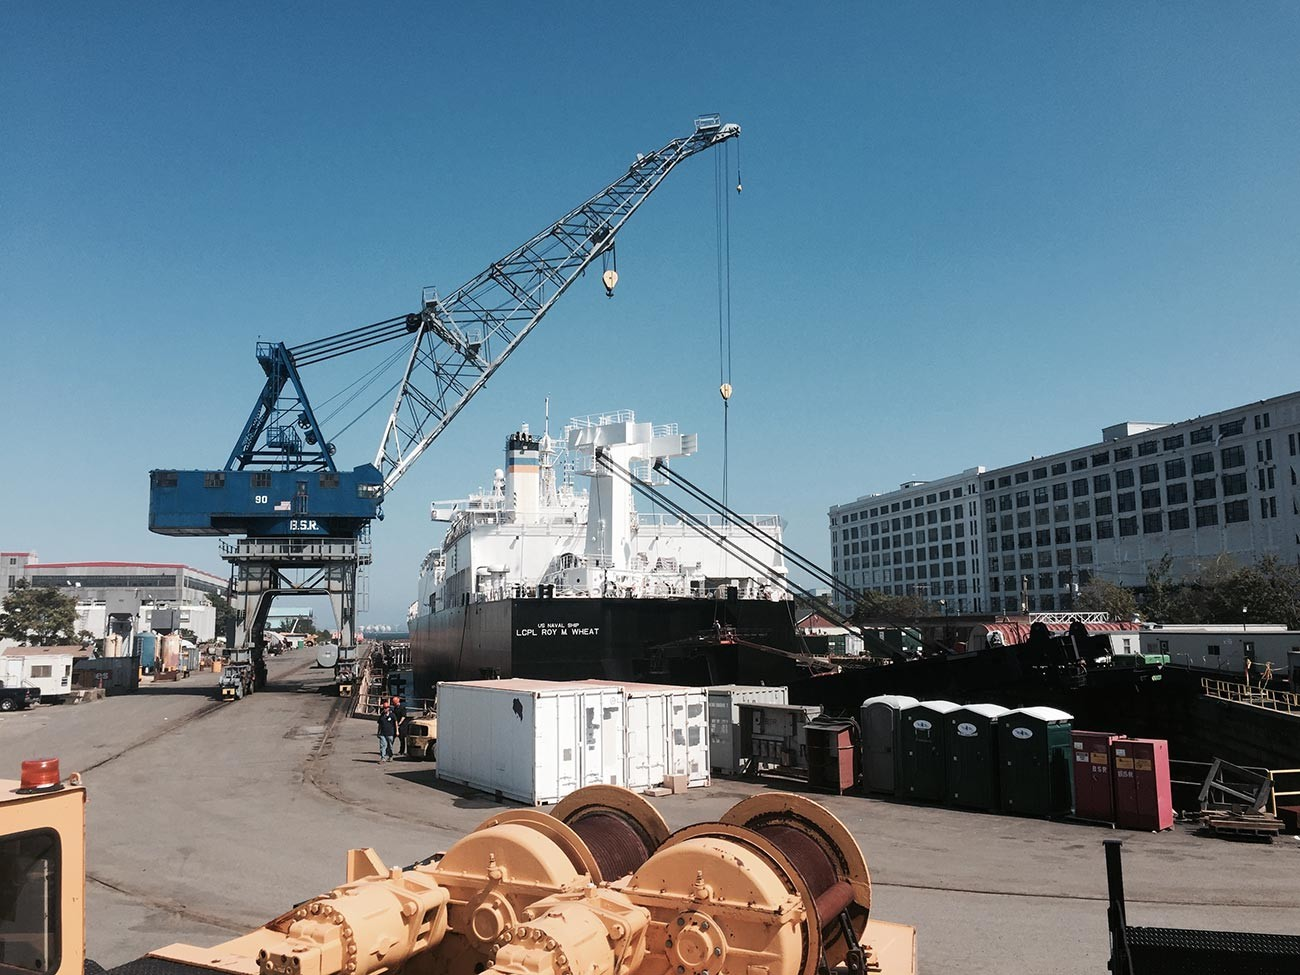 USNS LCPL Roy M. Wheat (T-AK 3016), named after w:Roy M. Wheat, in Boston's dry dock number 3